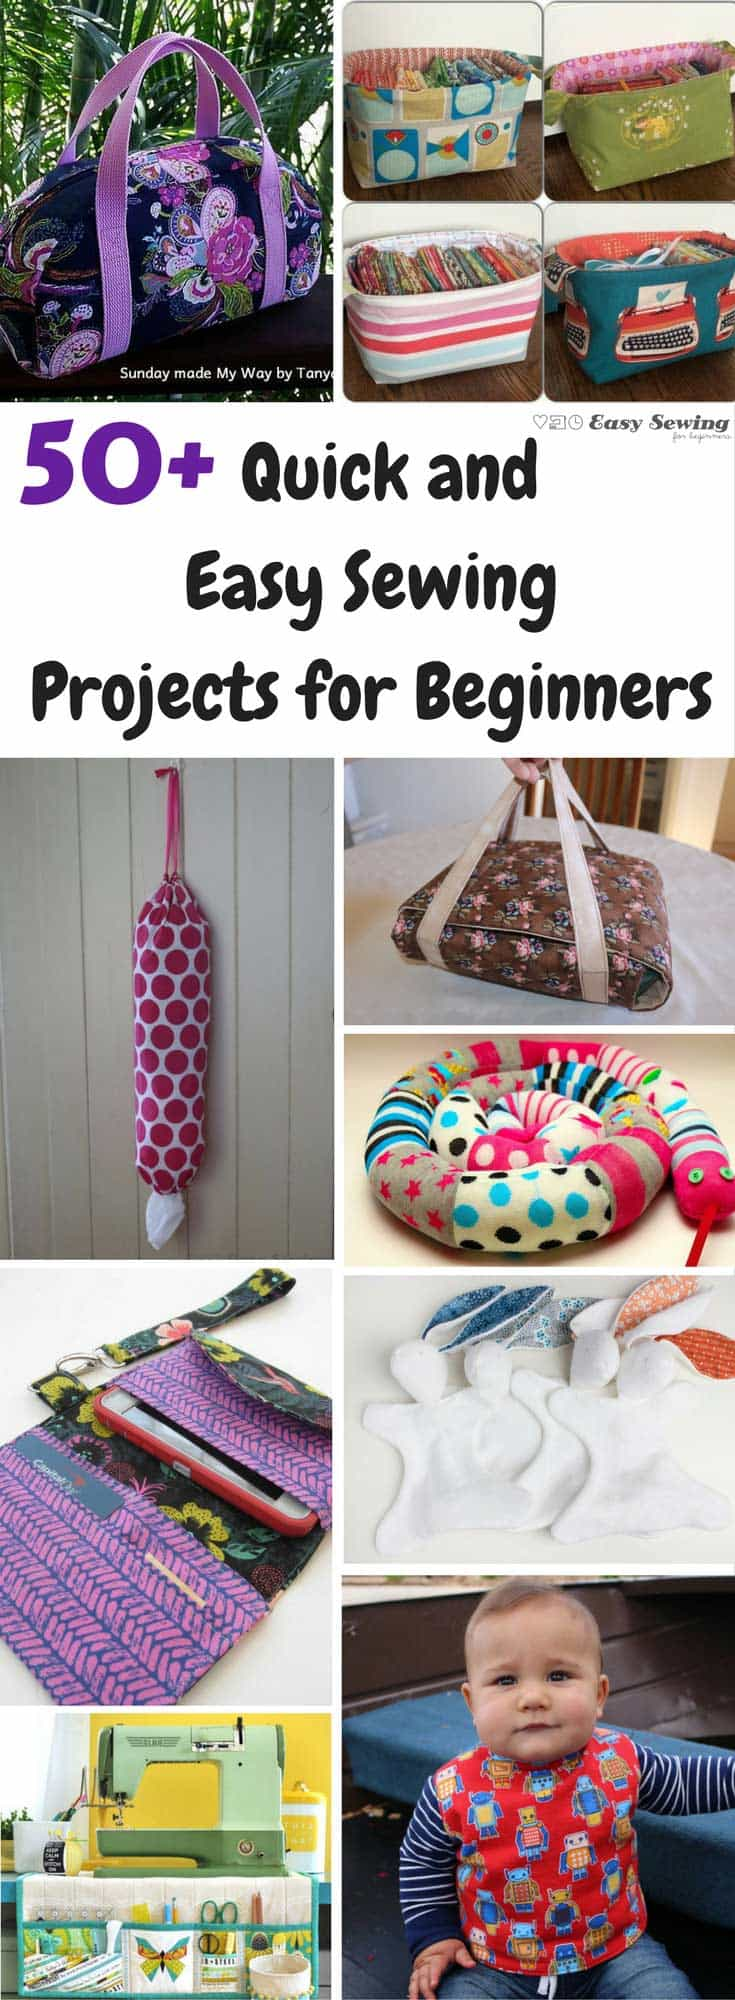 easy sew projects You don't have to know how to sew to make amazing things with fabric using any one of these simply and fun no-sew tutorials.